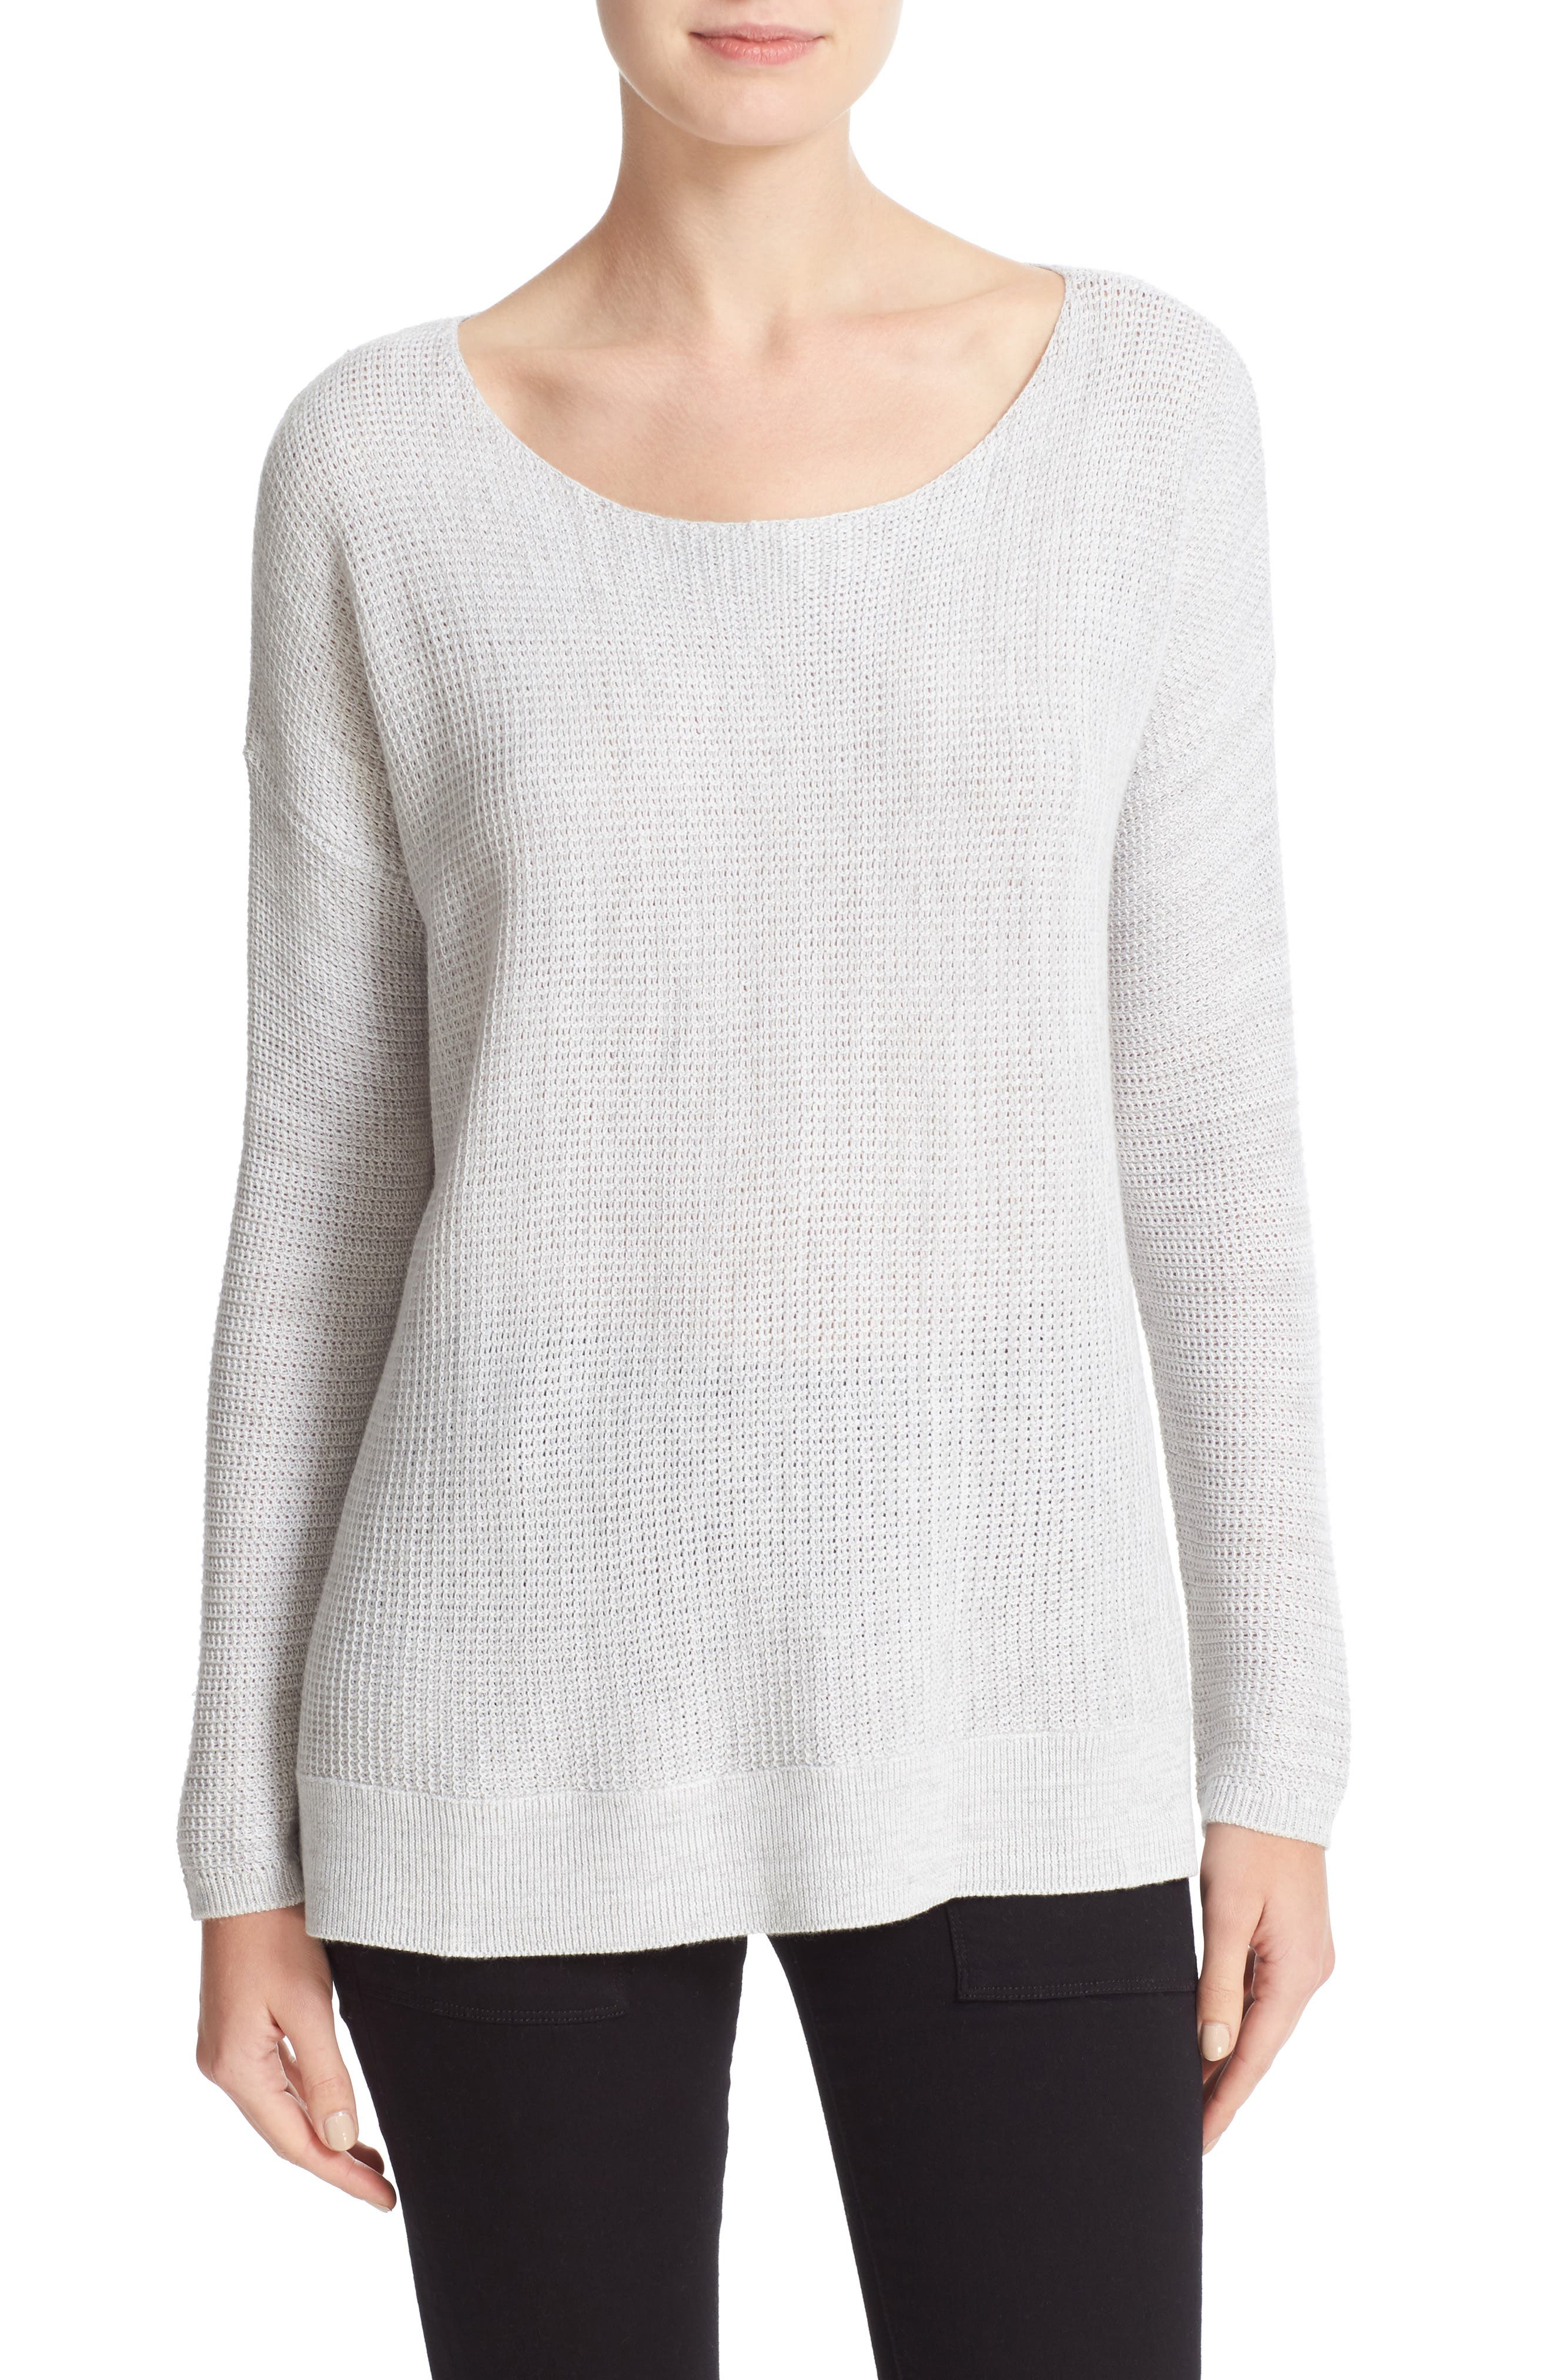 Soft Joie Kashani Pullover,                             Main thumbnail 2, color,